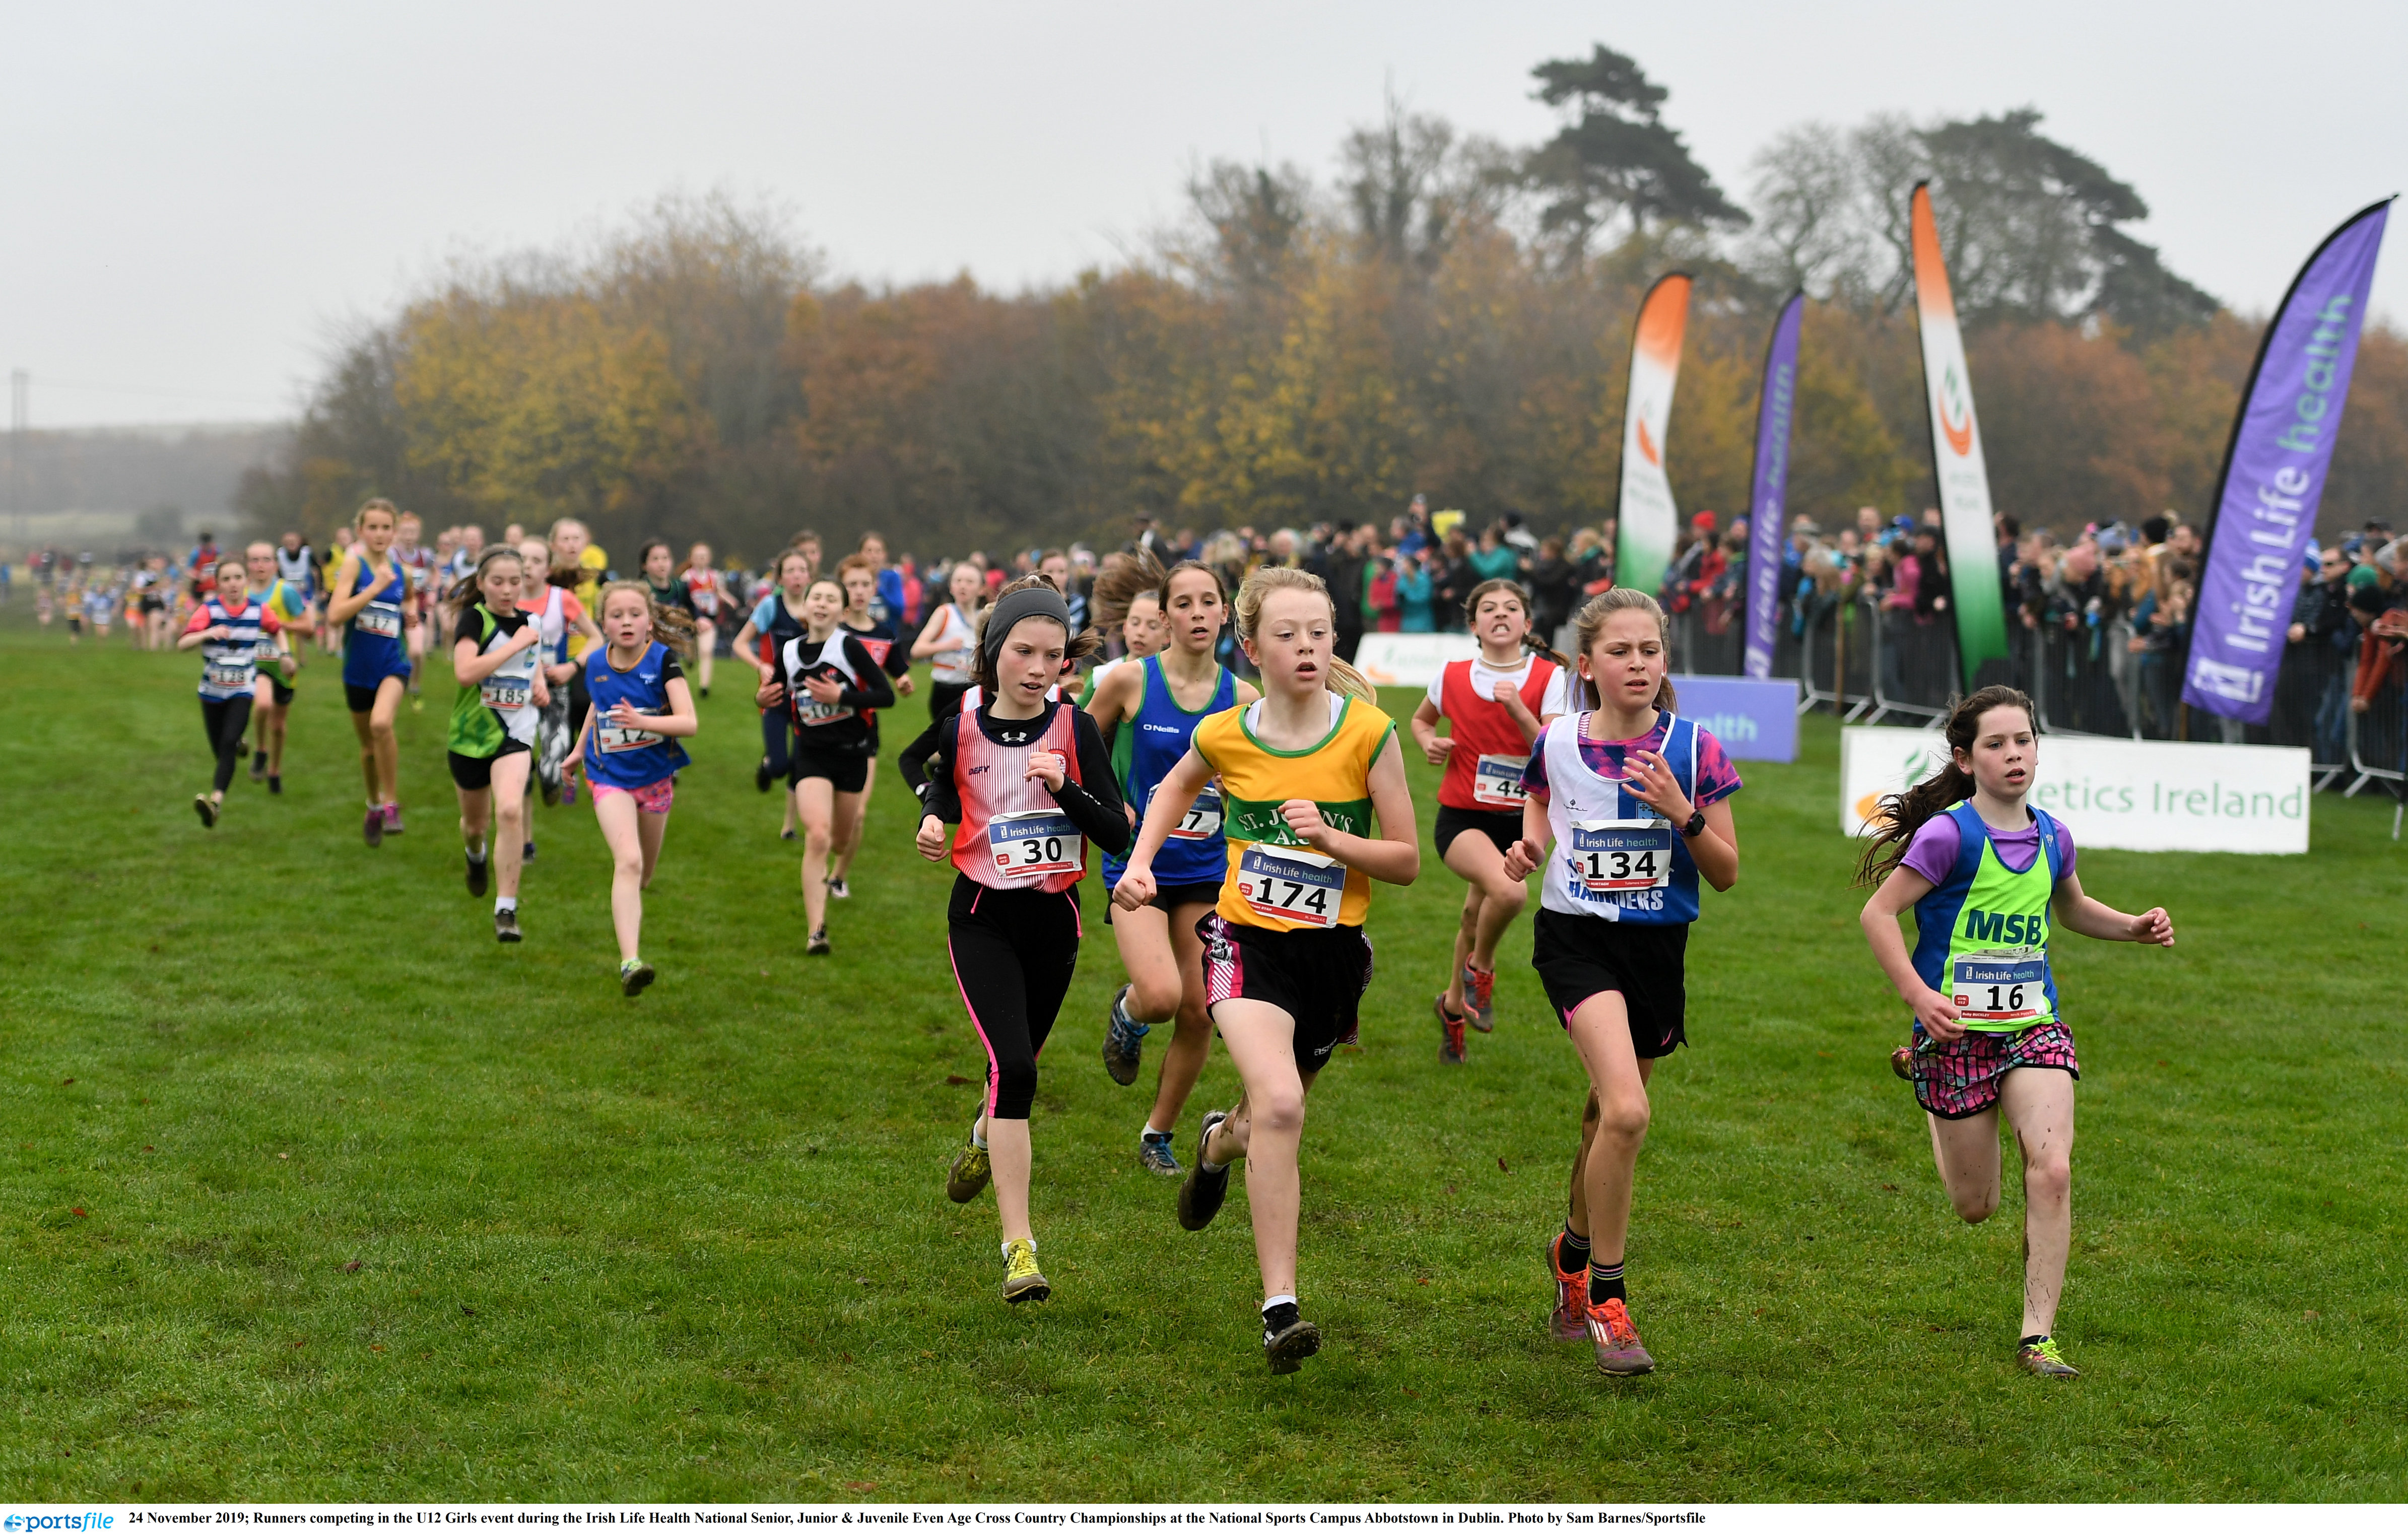 Juvenile Cross Country Championships 2020